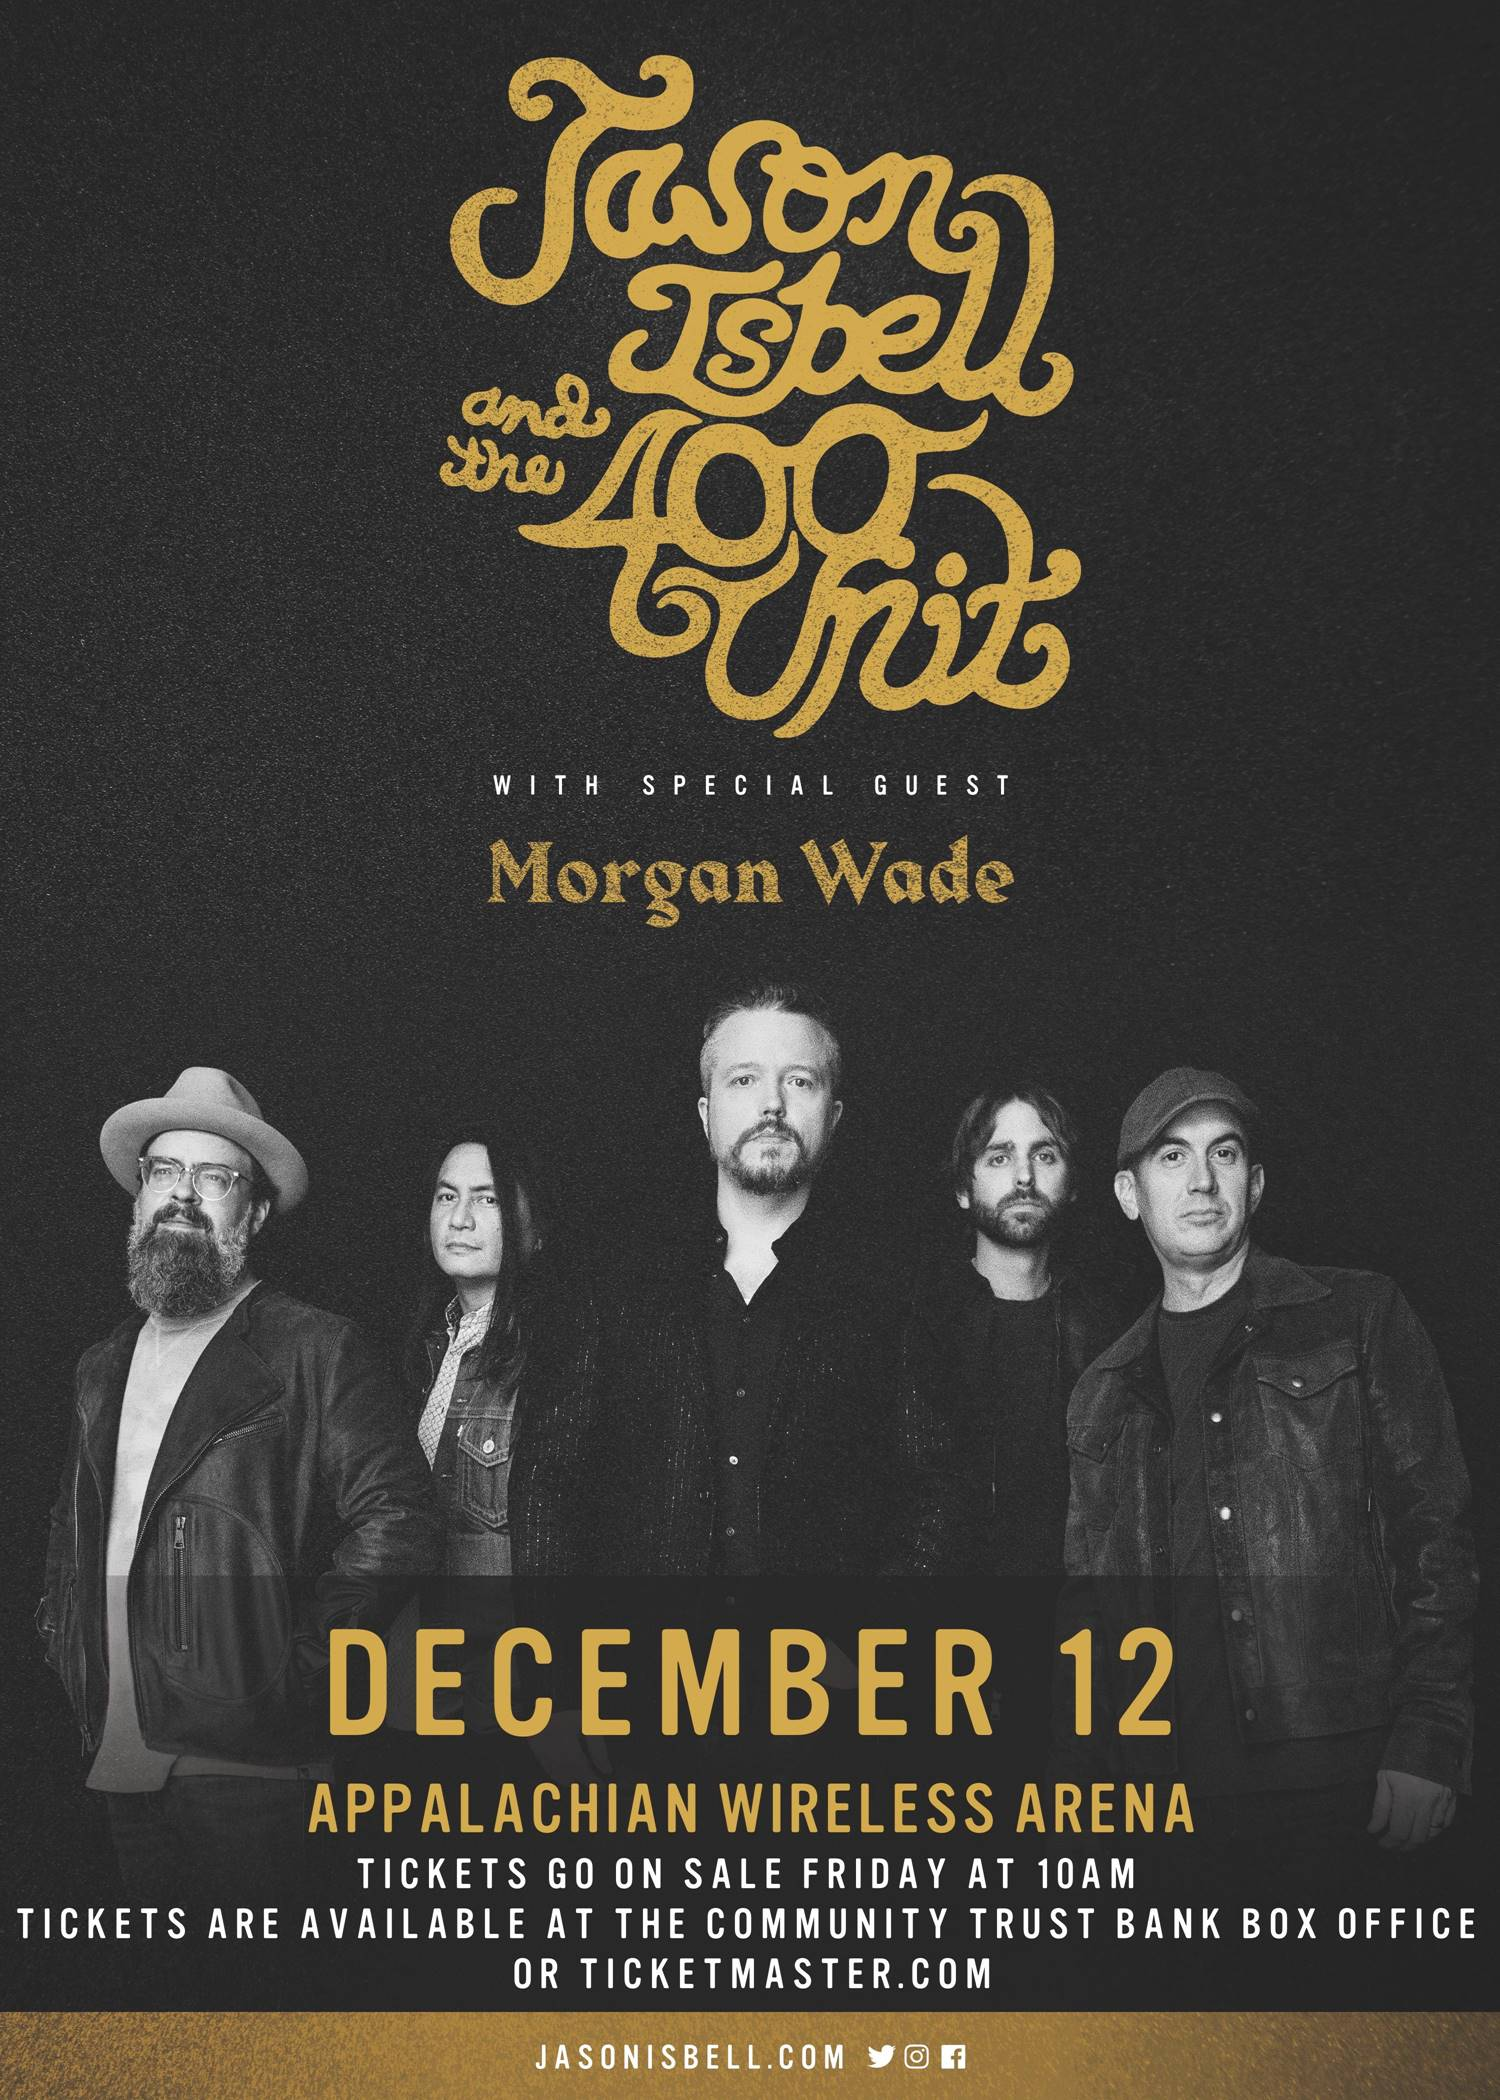 Jason Isbell and the 400 unit With special guest Morgan Wade